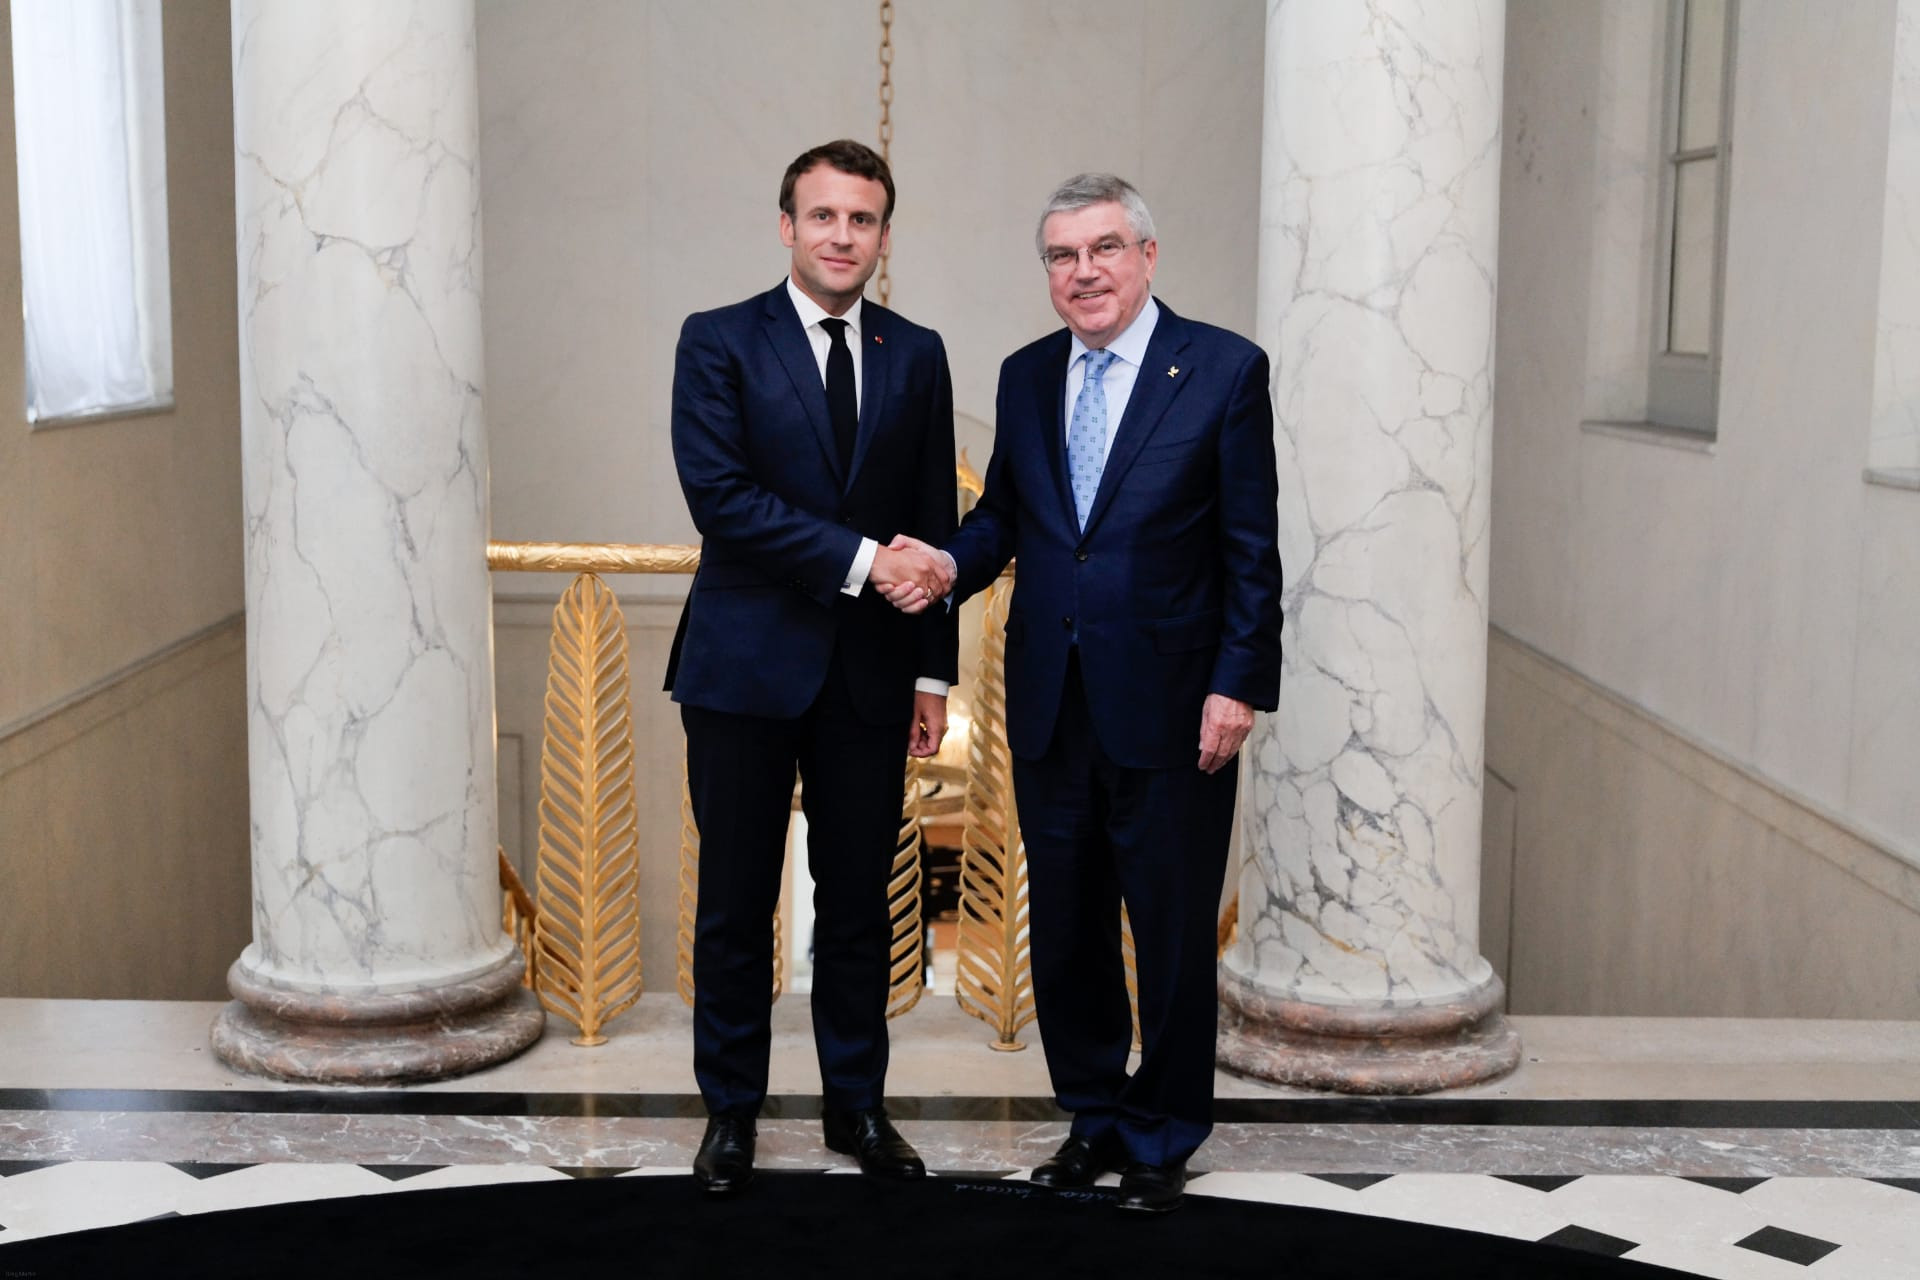 Paris 2024 high on agenda as Macron welcomes Bach to Élysée Palace